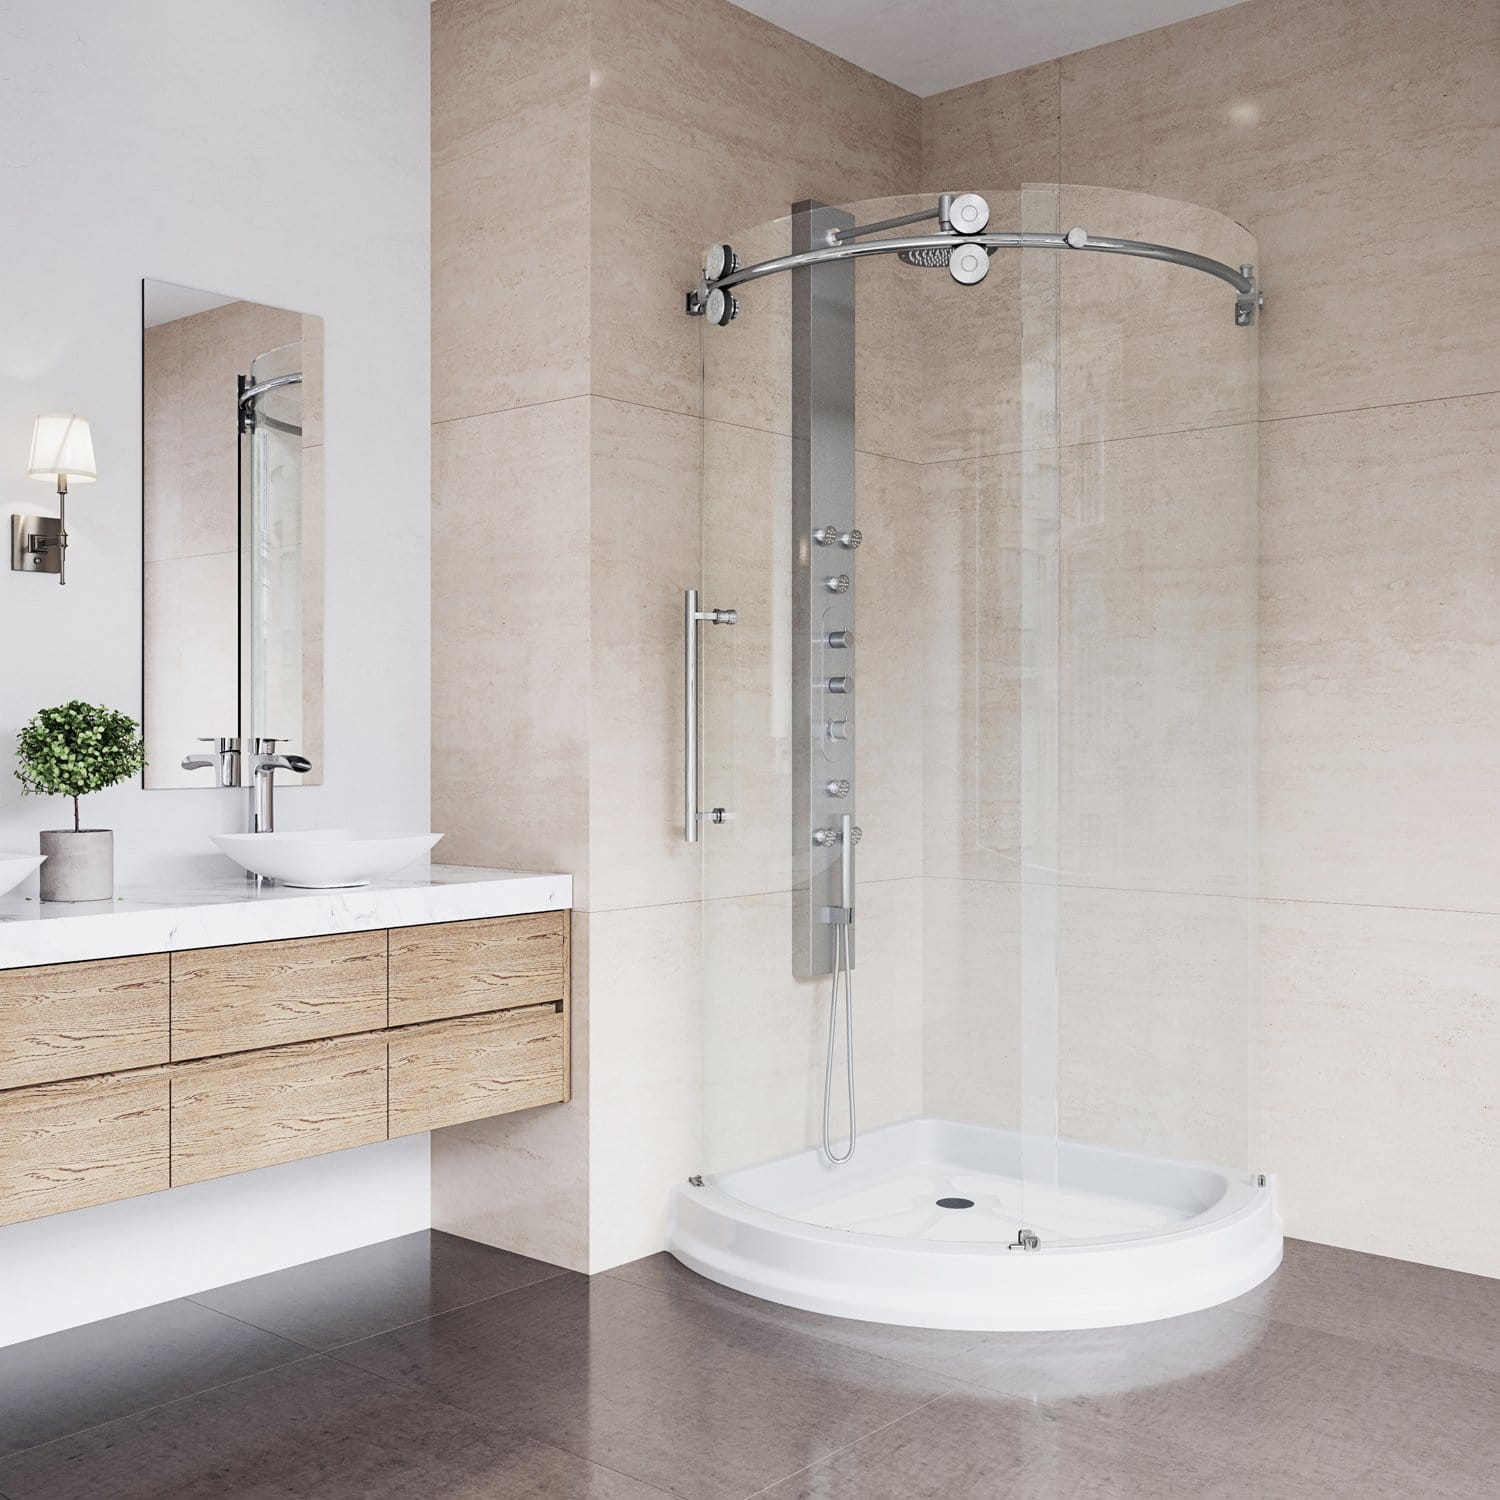 VIGO 40 x 40 Left Open Frameless Round Sliding Shower Enclosure with Tempered Glass and 304 Stainless Steel Hardware